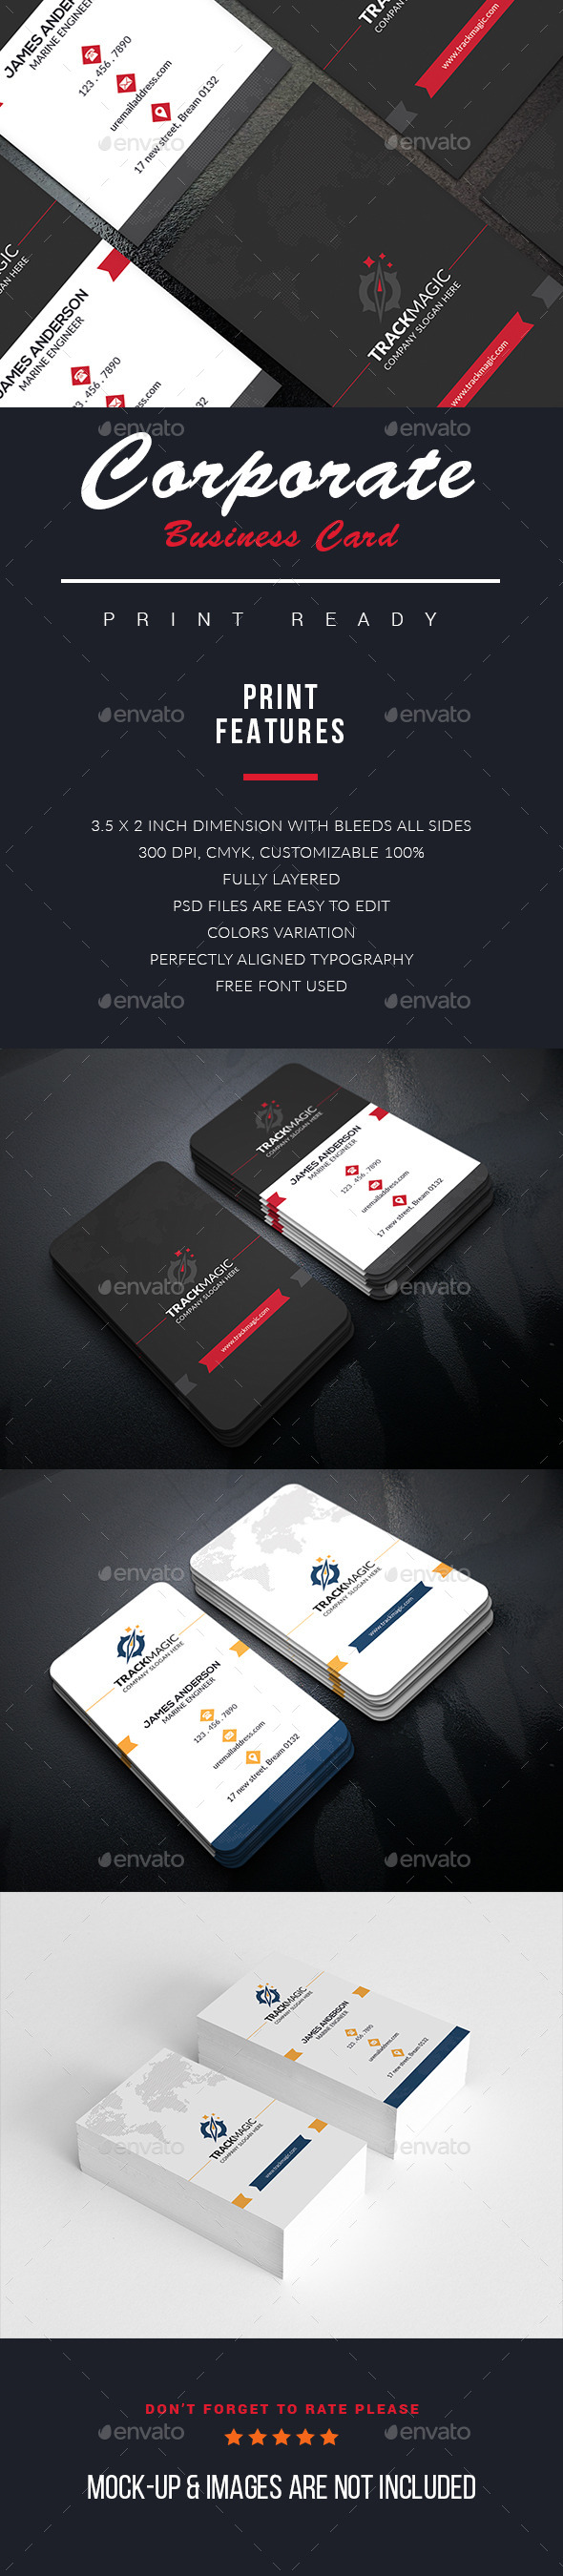 Galaxy Business Card - Business Cards Print Templates